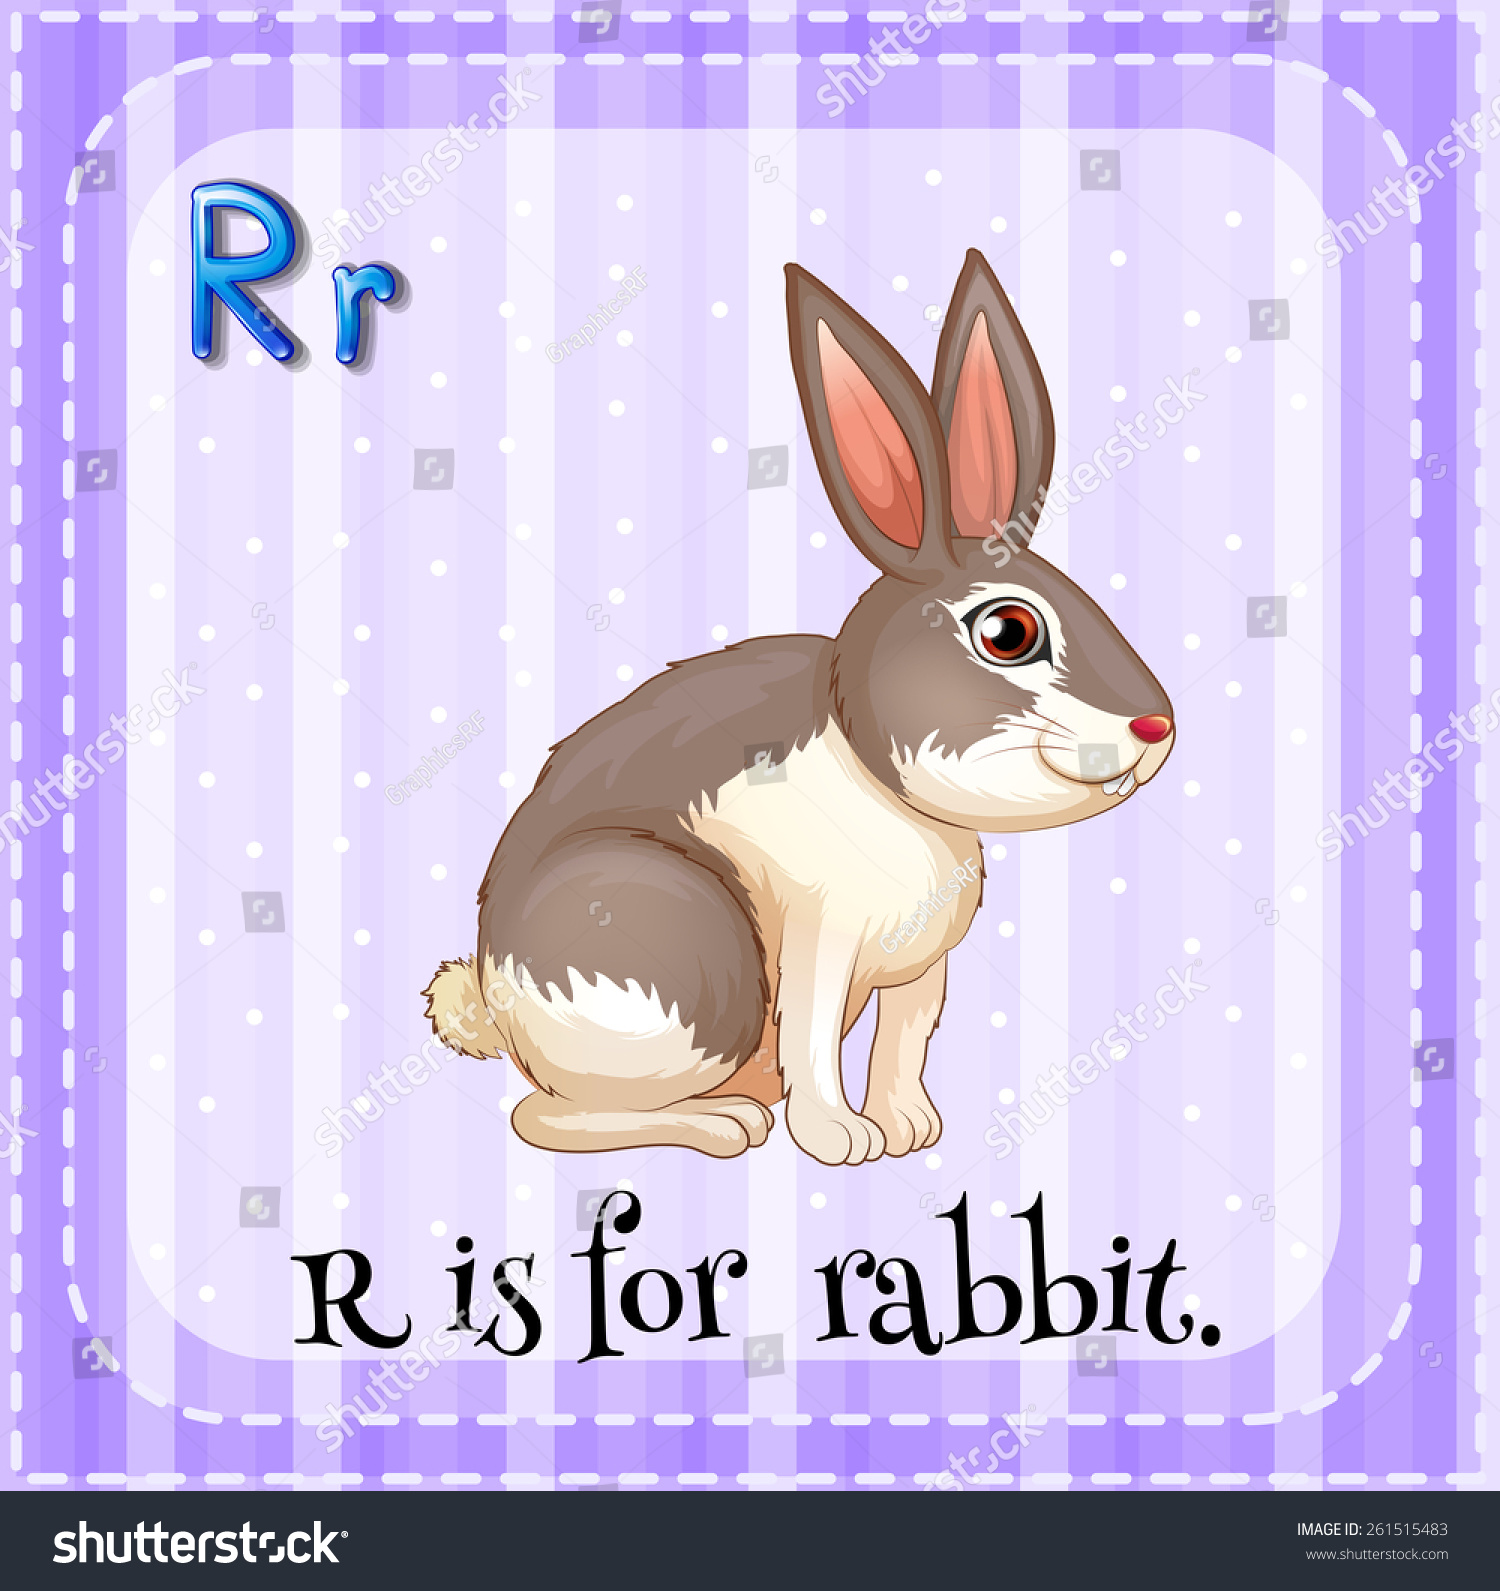 R Is For Rabbit Flash Card Letter R Is...